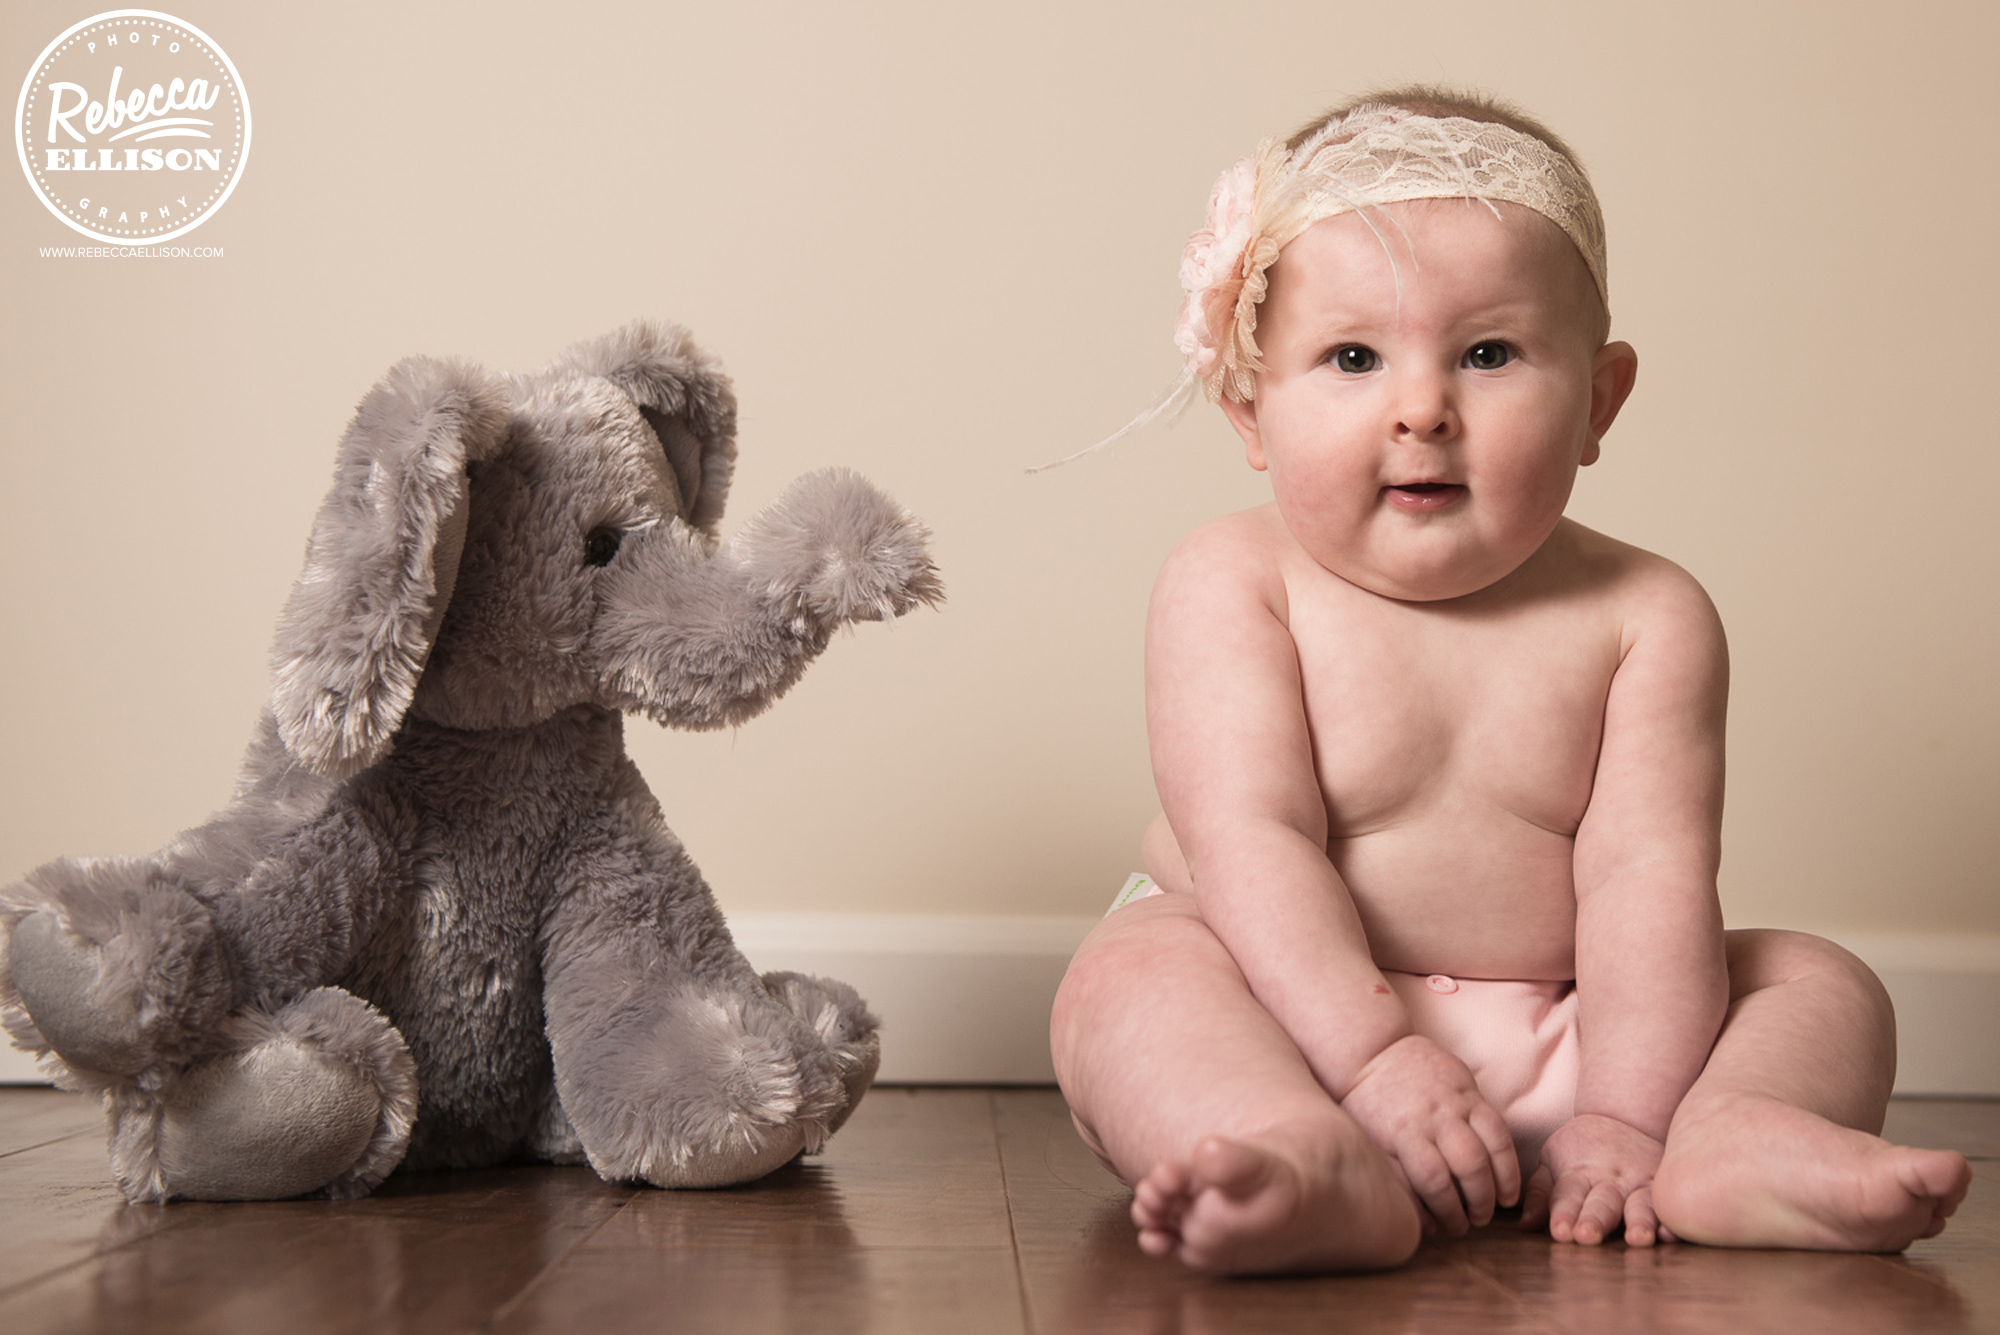 Baby Girl with Toy Elephant during a custom portrait session in Bellevue Washington photographed by Rebecca Ellison Photography